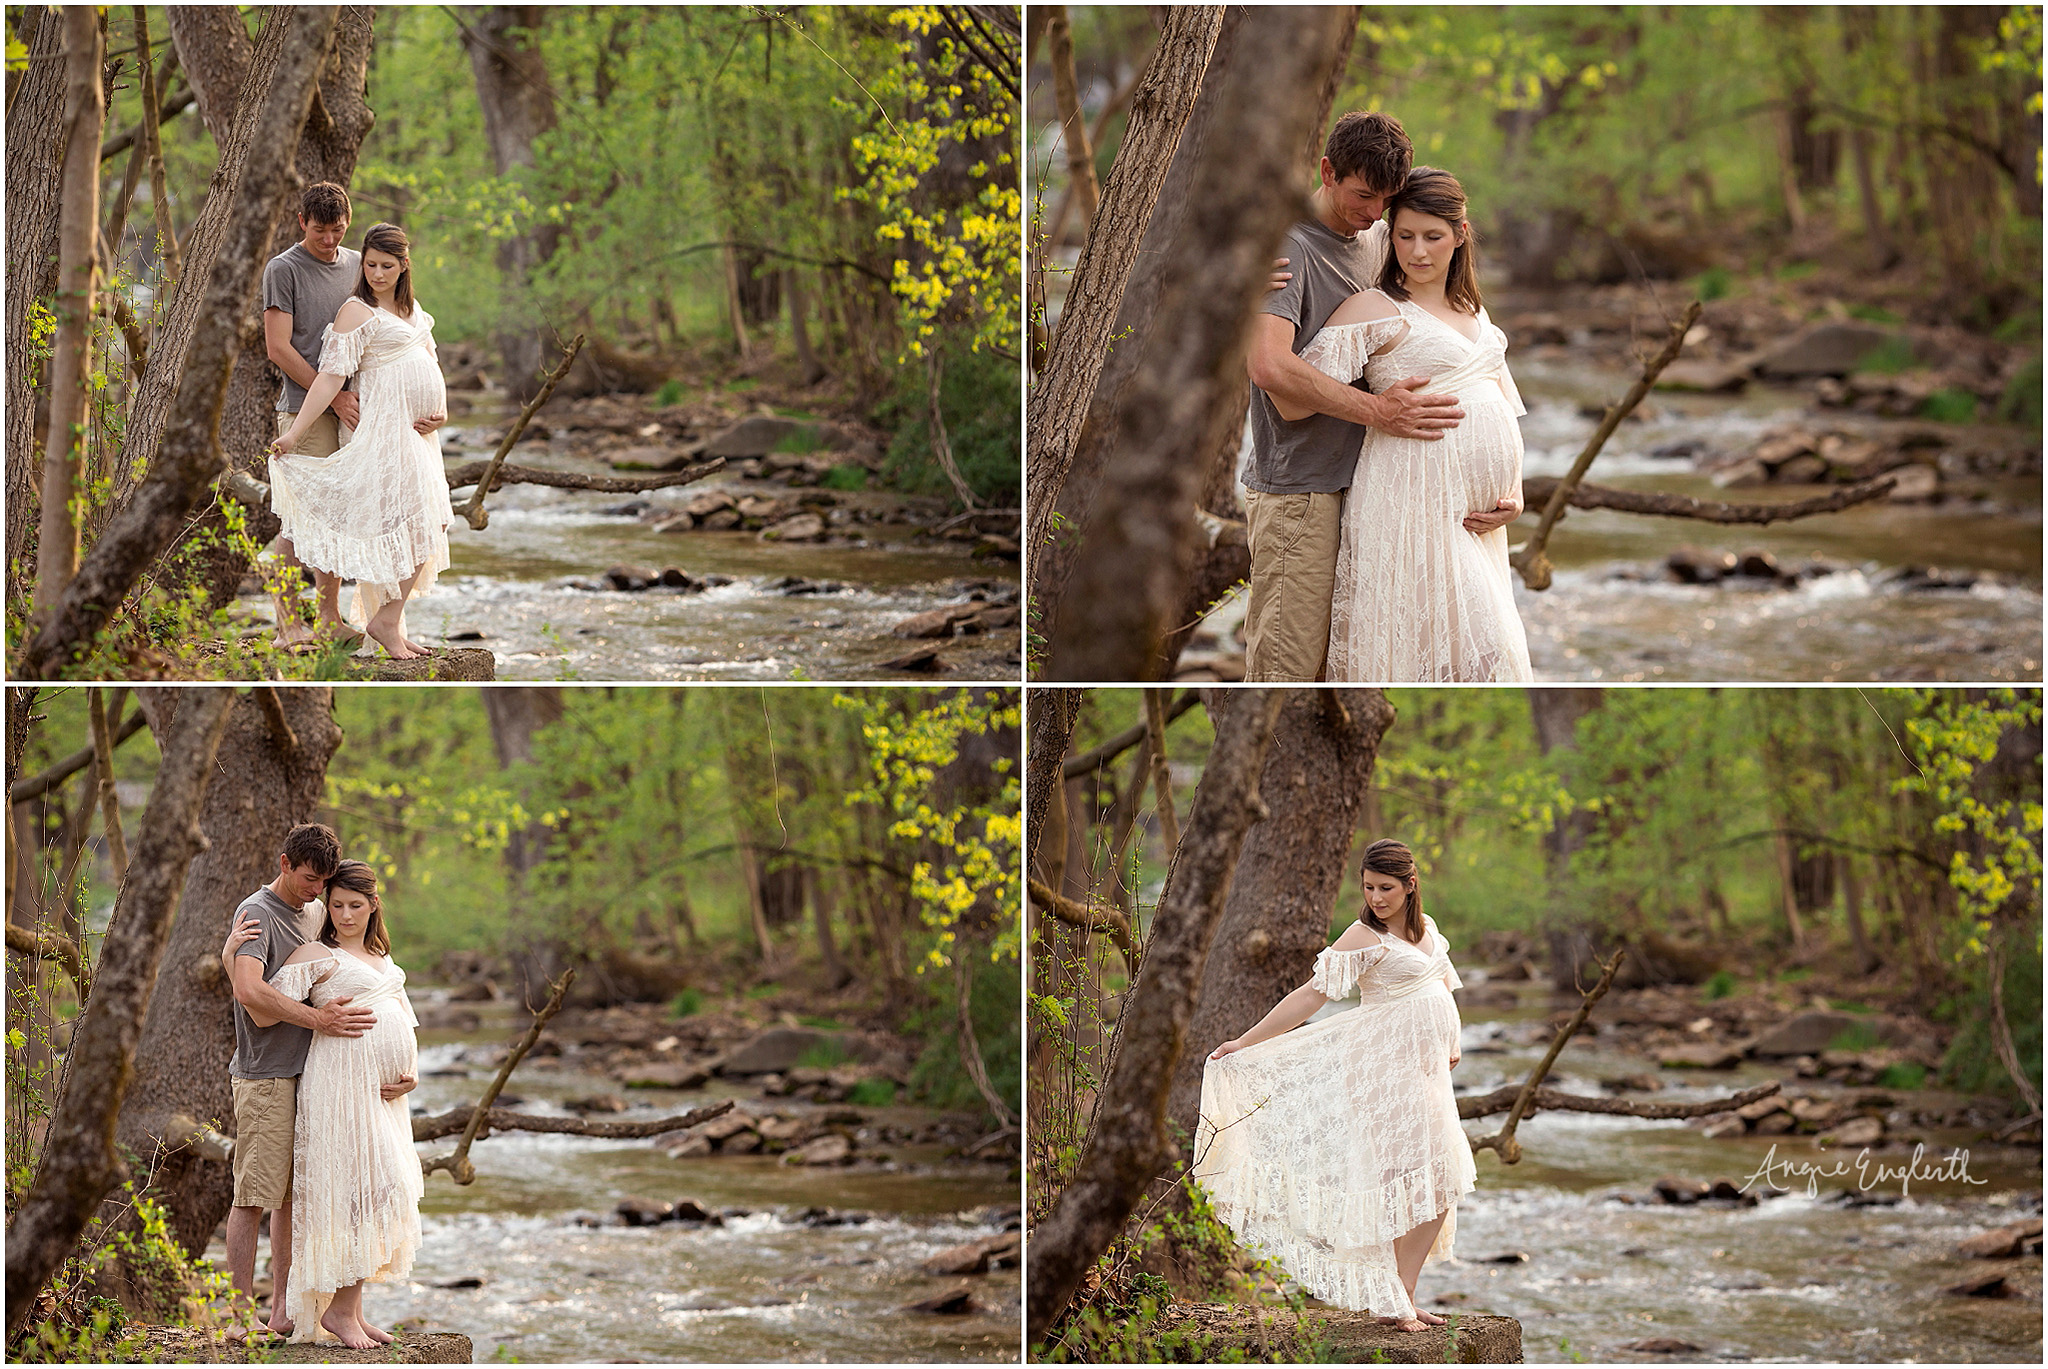 lancaster_maternity_photographer_angie_englerth_lancaster_central_pa_aep_015.jpg